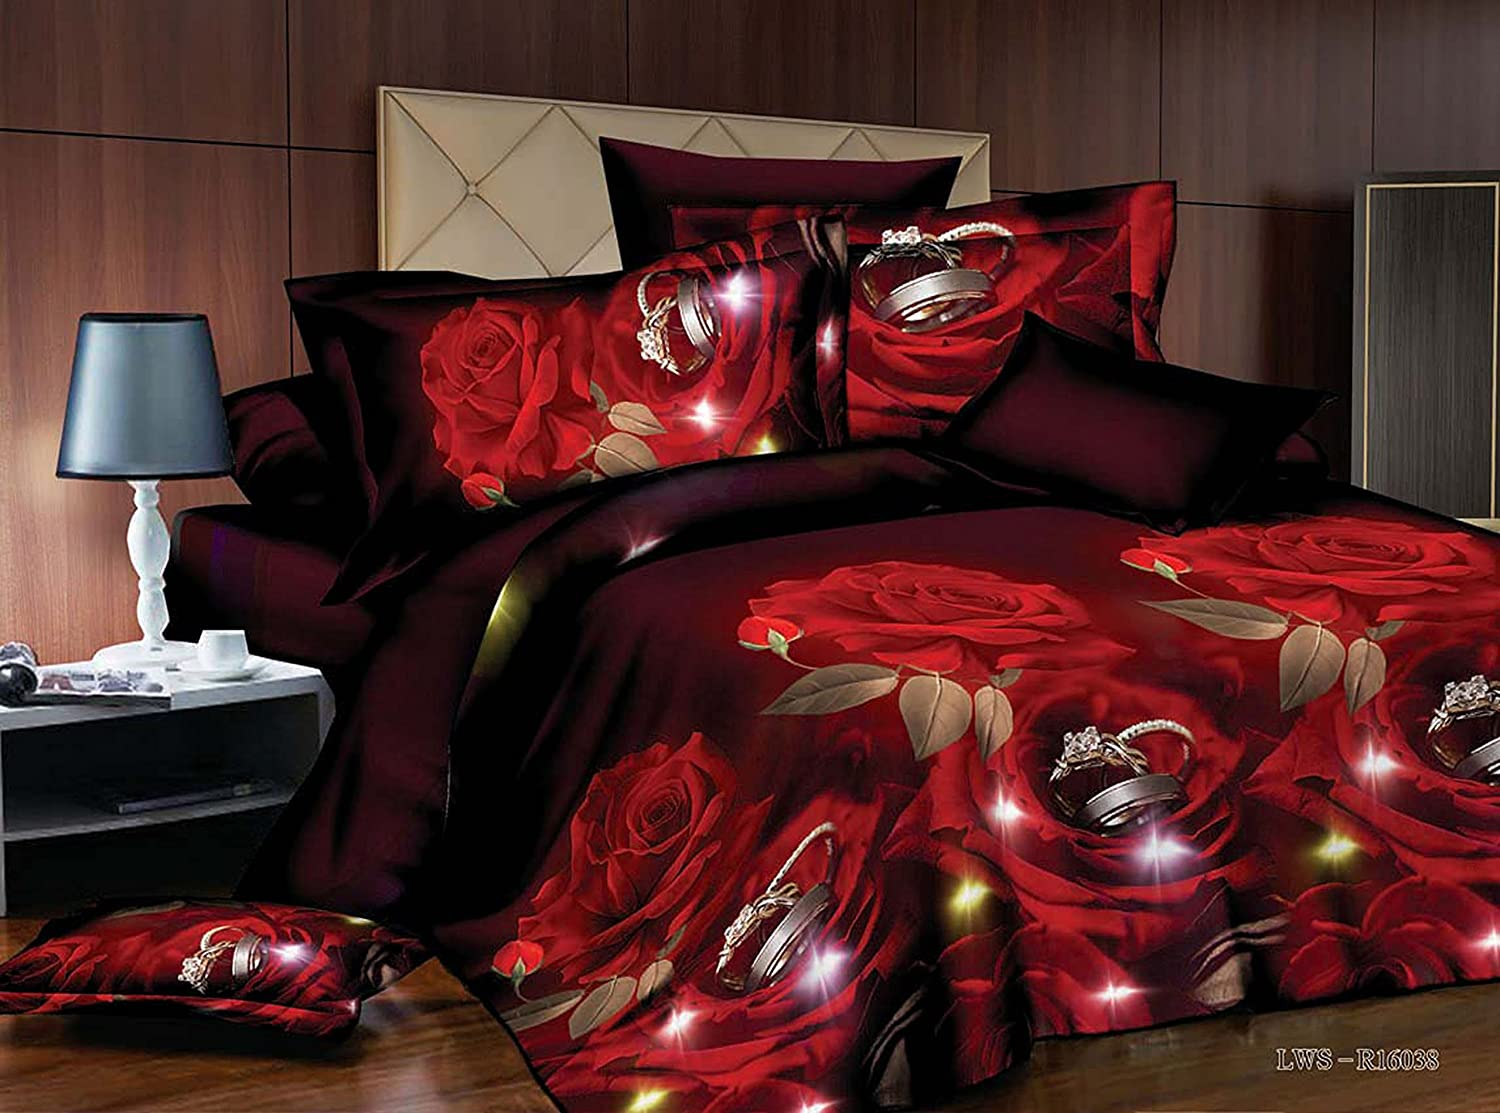 Bednlinens Luxury 4 Piece Sheet Set 3d Red Rose and Rings Print King Size Maroon